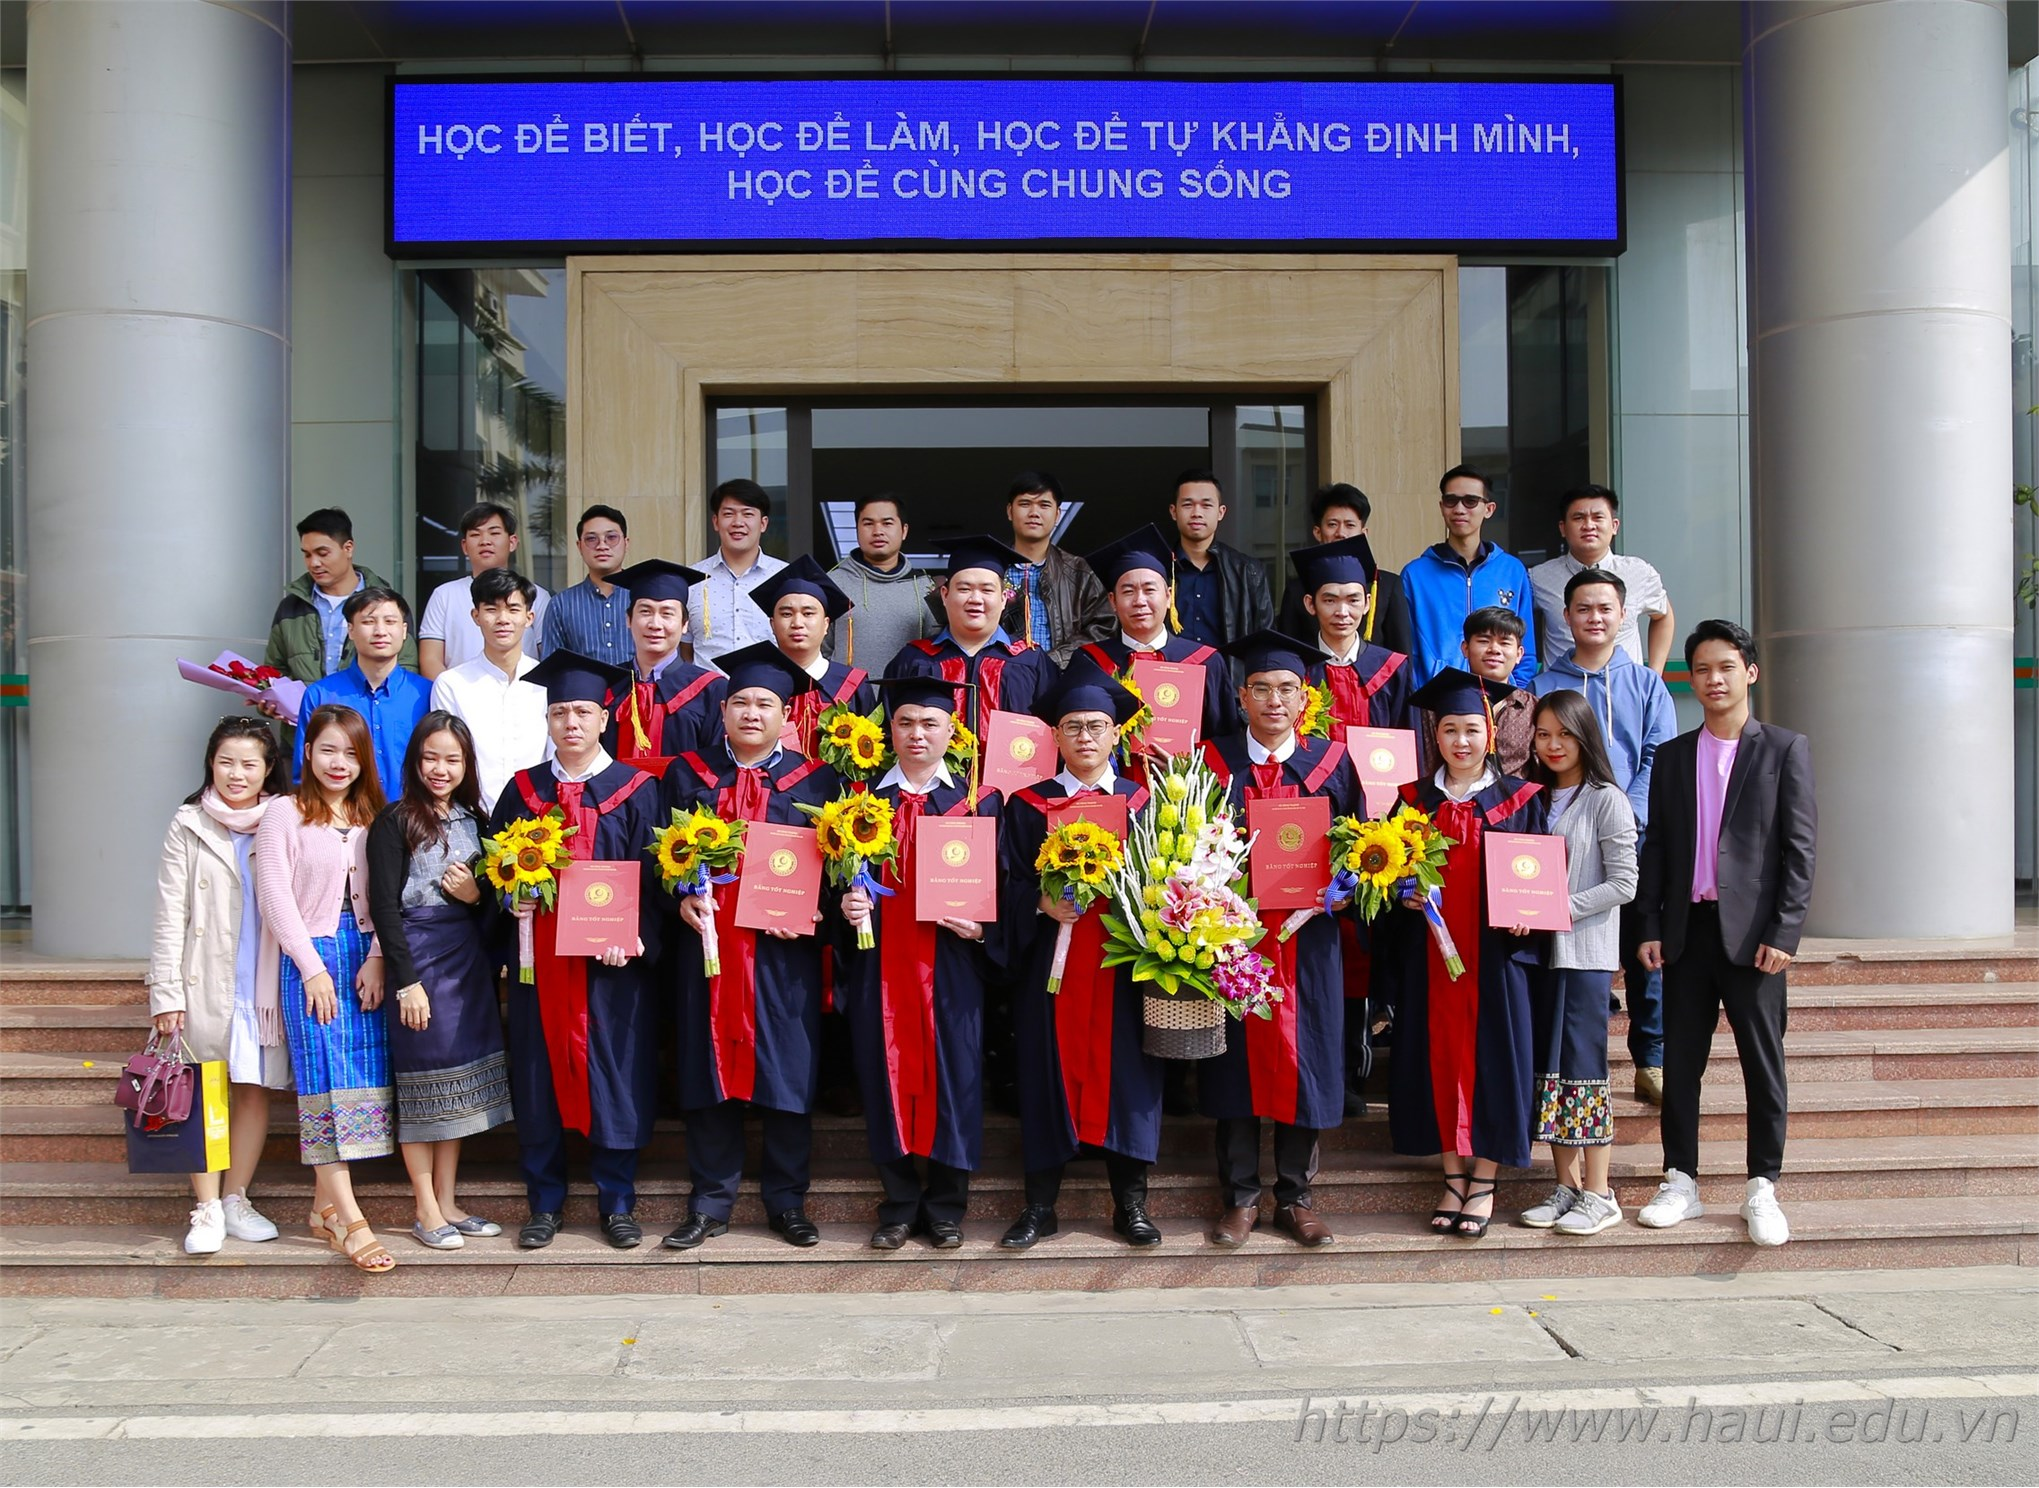 Graduation Ceremony and Award of Master's Degree for 12 Lao students